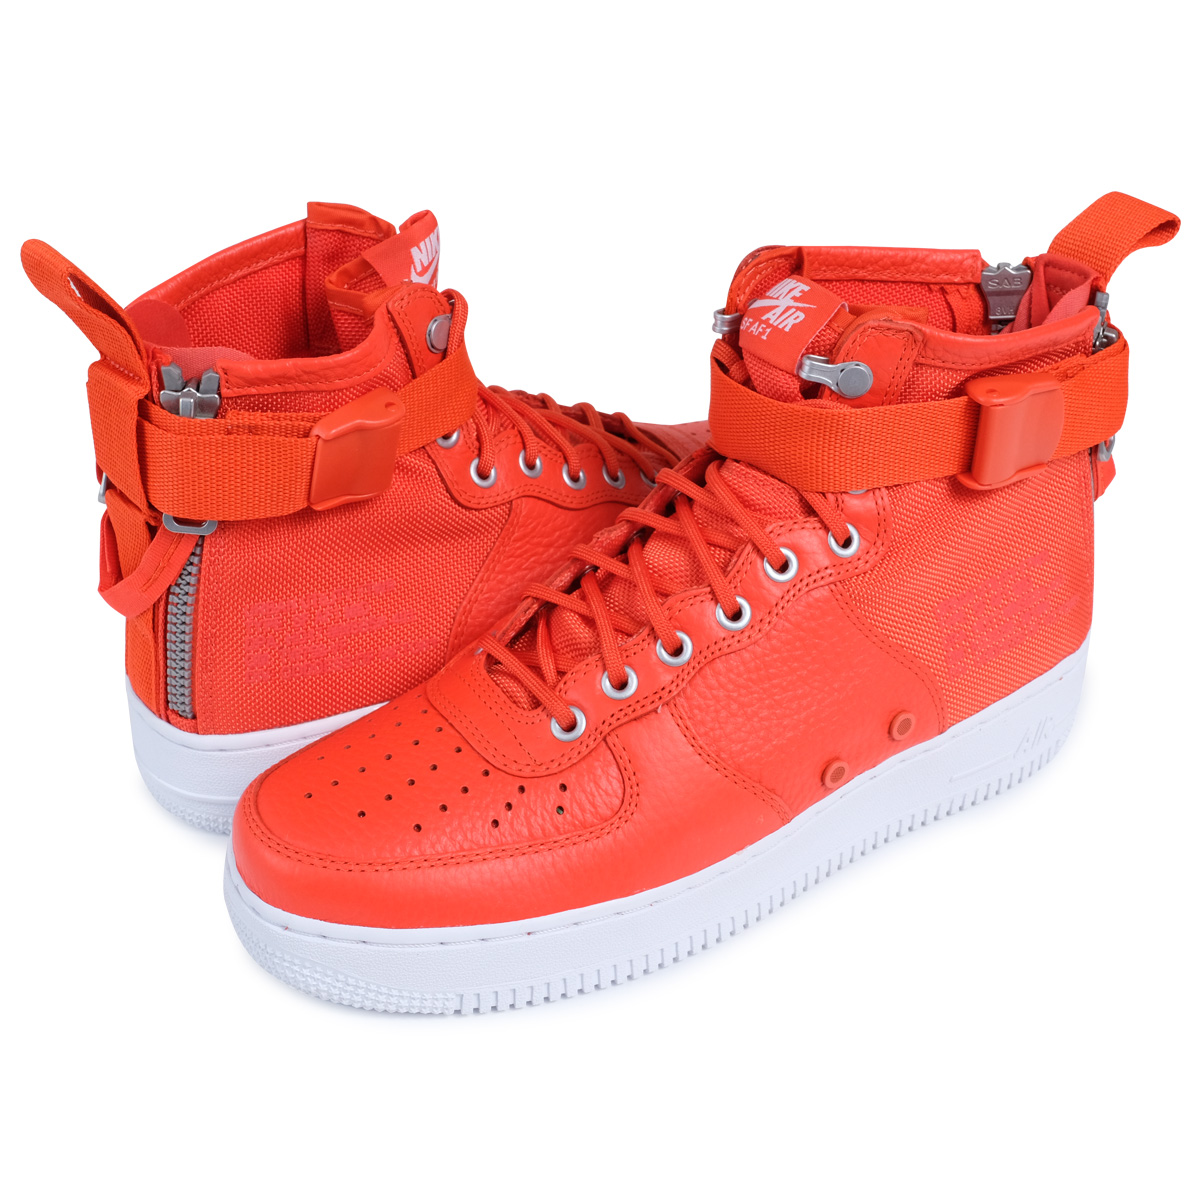 info for 72373 71bc1 An NIKE SPECIAL FIELD AIR FORCE 1 Nike air force 1 MID sneakers 917,753-800  ...